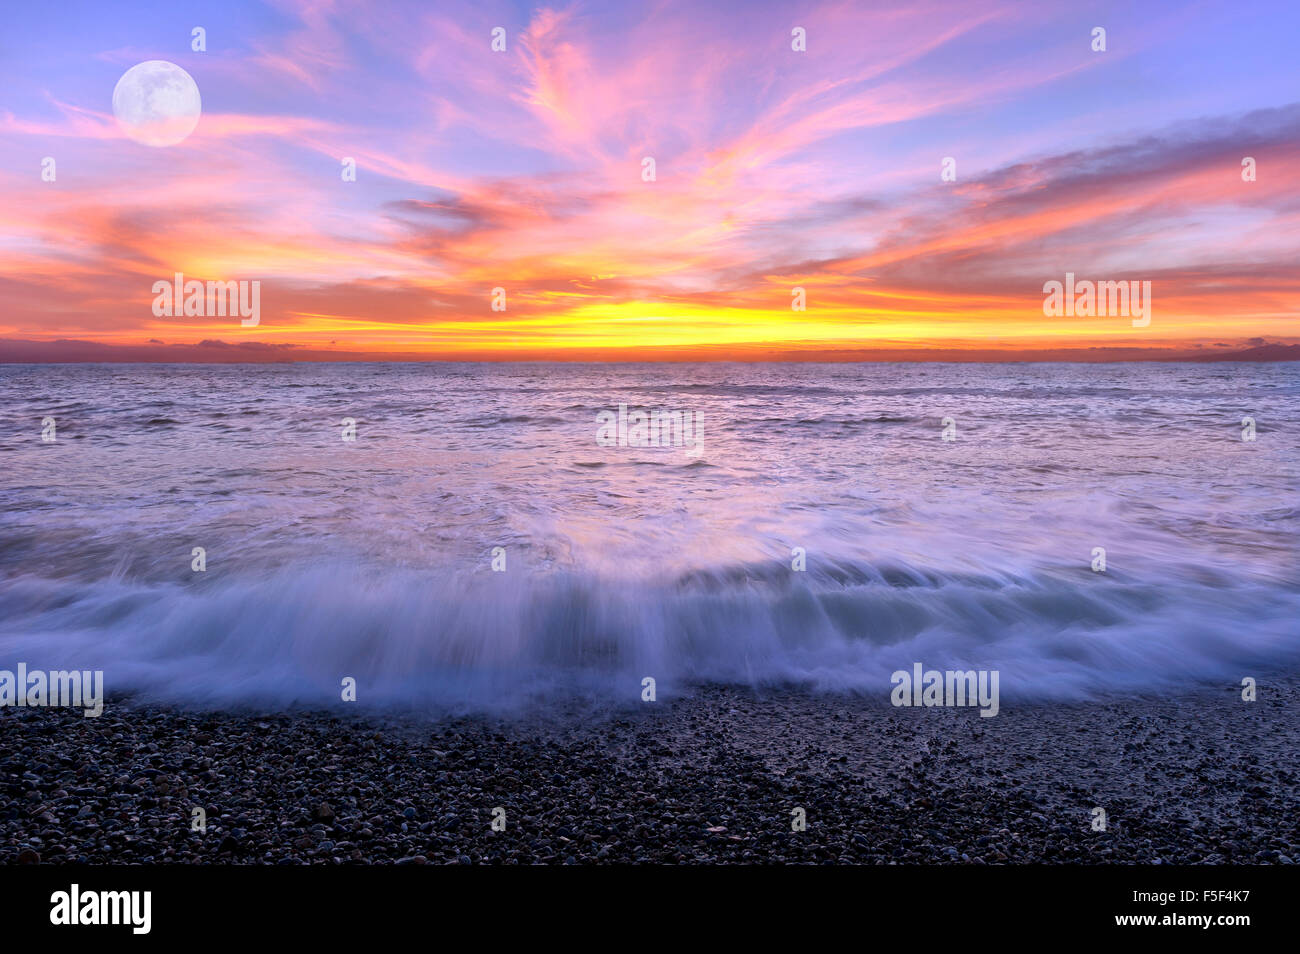 Ocean sunset moon is a color filled sky with the waves breaking on shore and the full moon rising in the background. Stock Photo